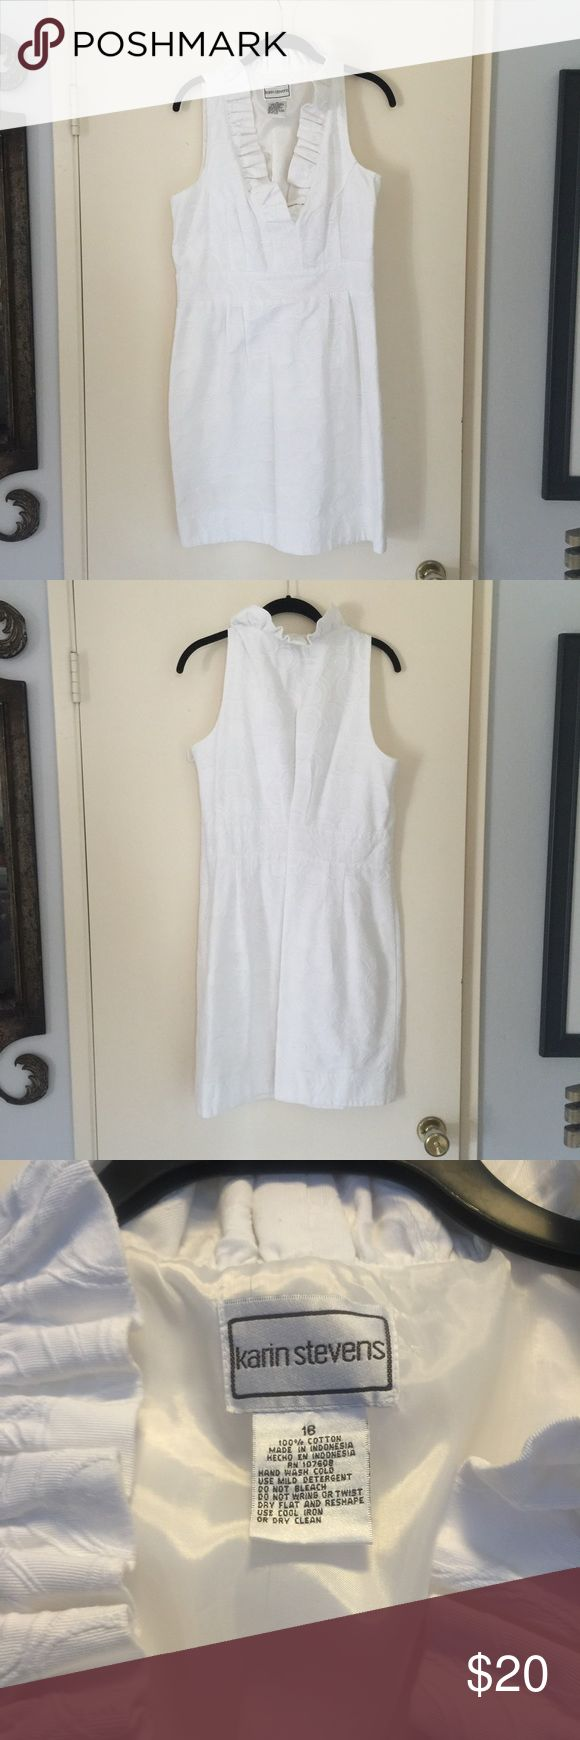 Women's white dress Women's white dress. Says size 16 but fits a size 12/14 nicely. Karin Stevens Dresses